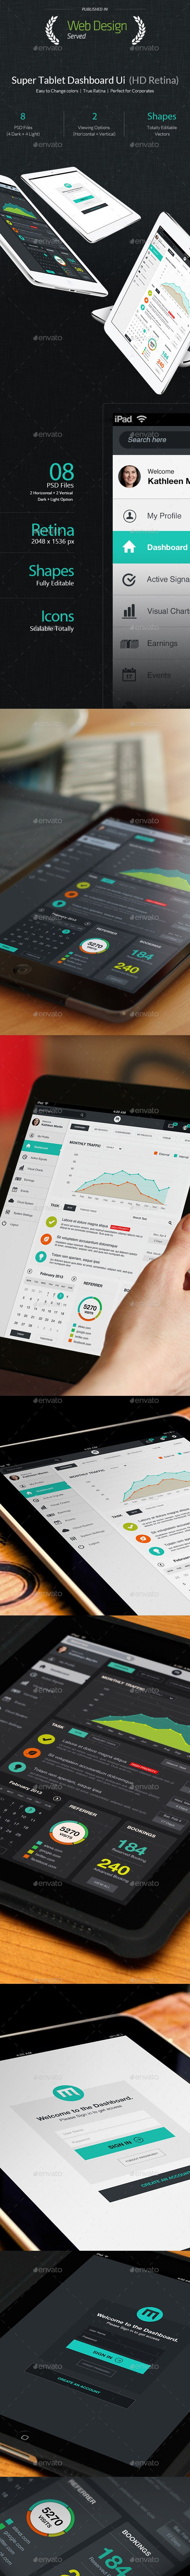 Super Tablet Dashboard Flat Ui  - User Interfaces Web Elements